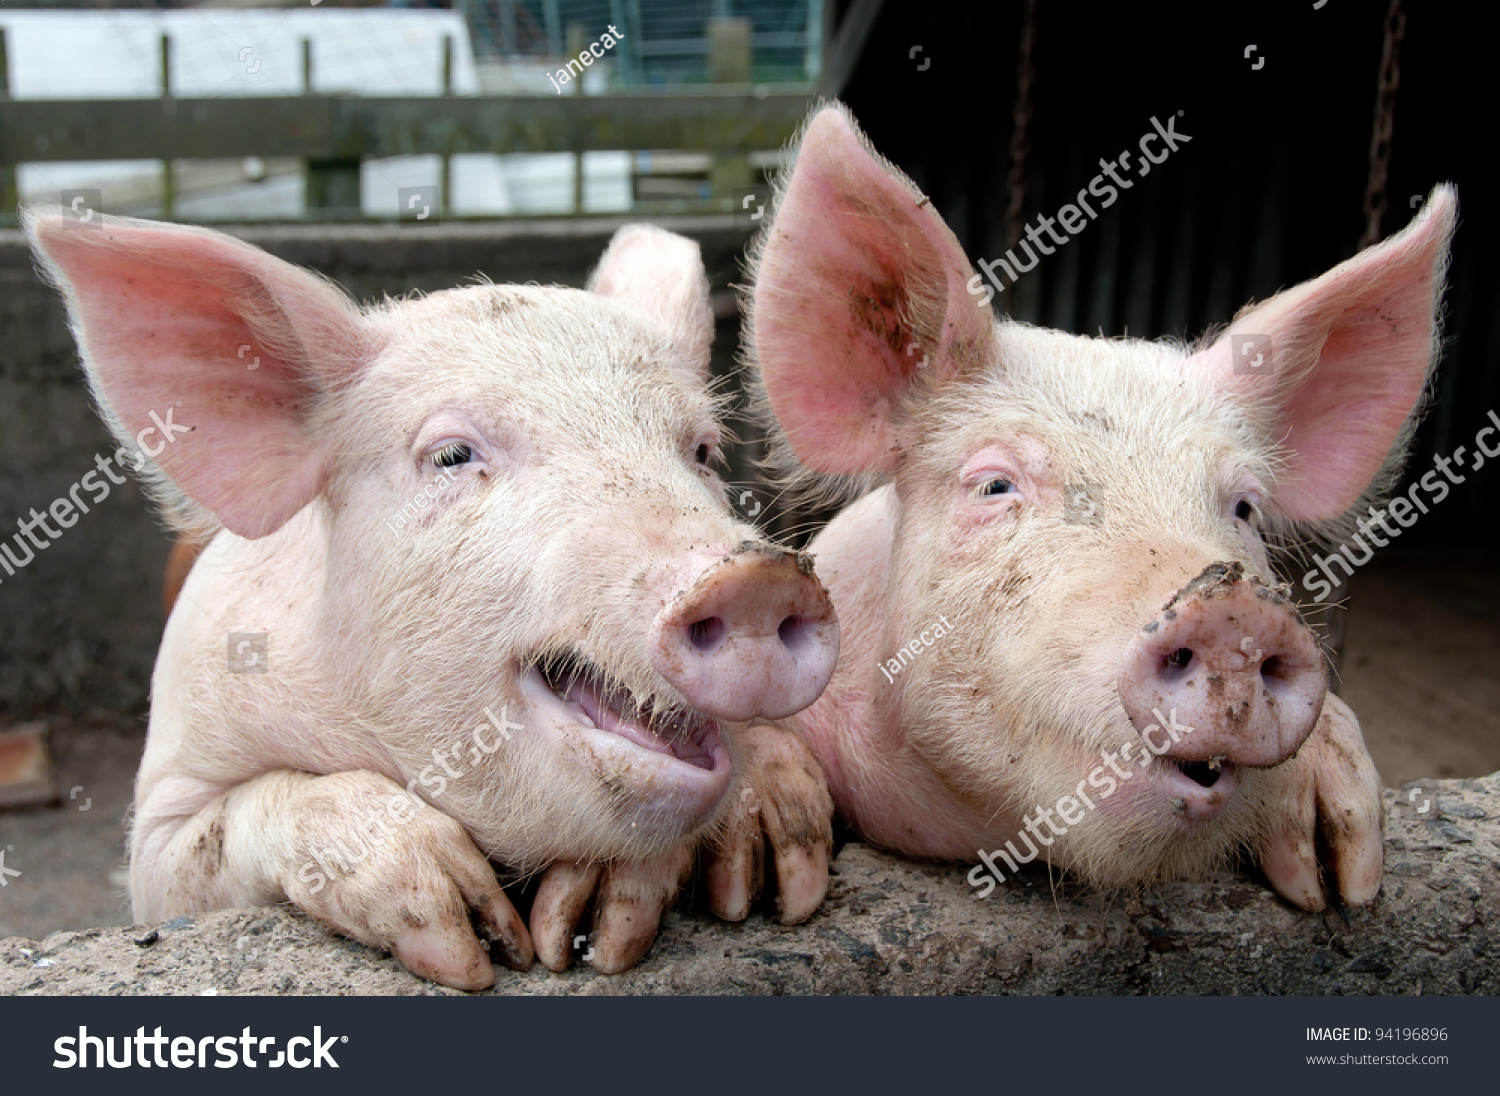 Pig And Dog Fight Video Download